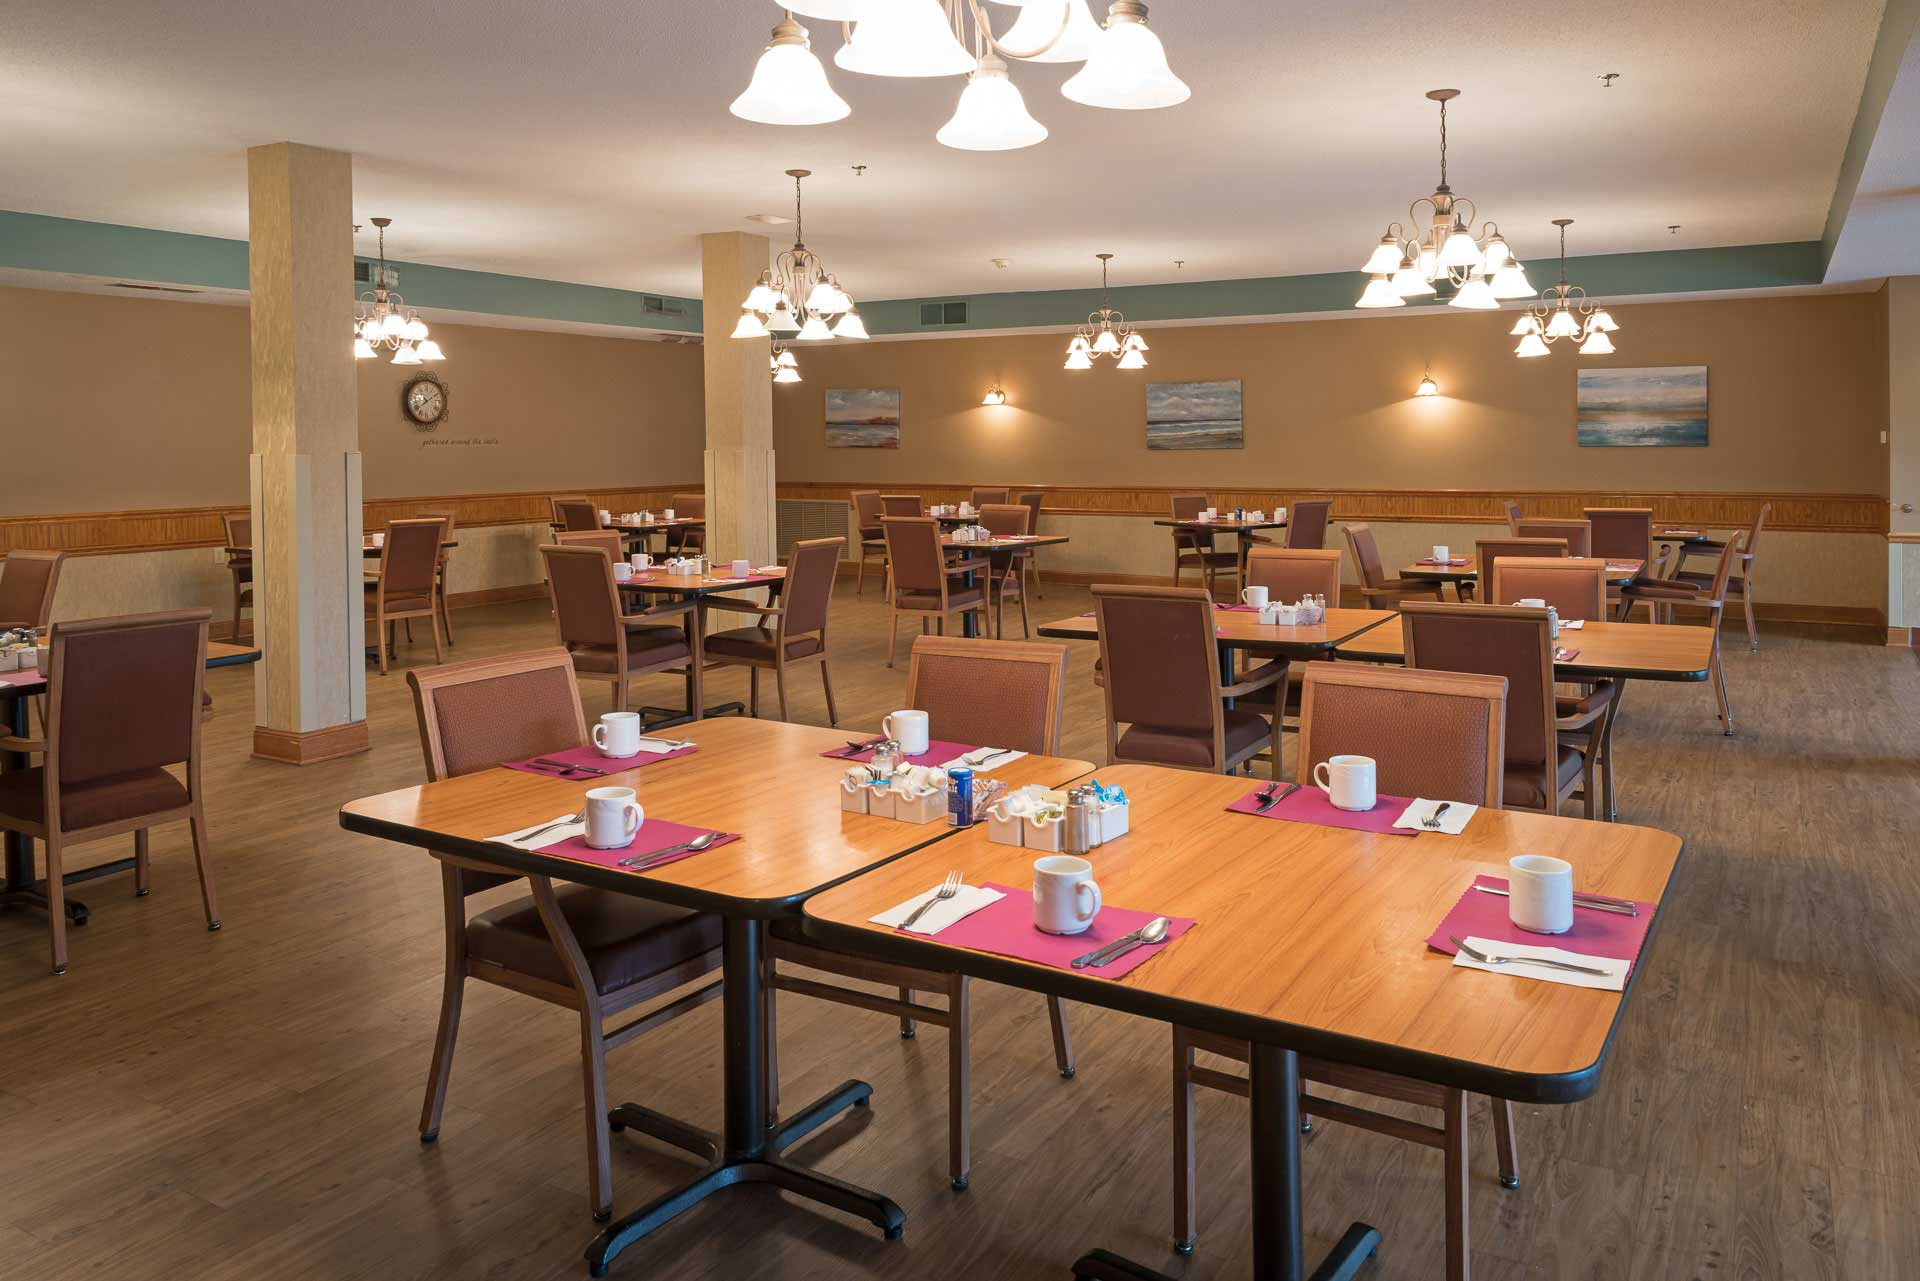 Epiphany Senior Housing cafeteria in Coon Rapids